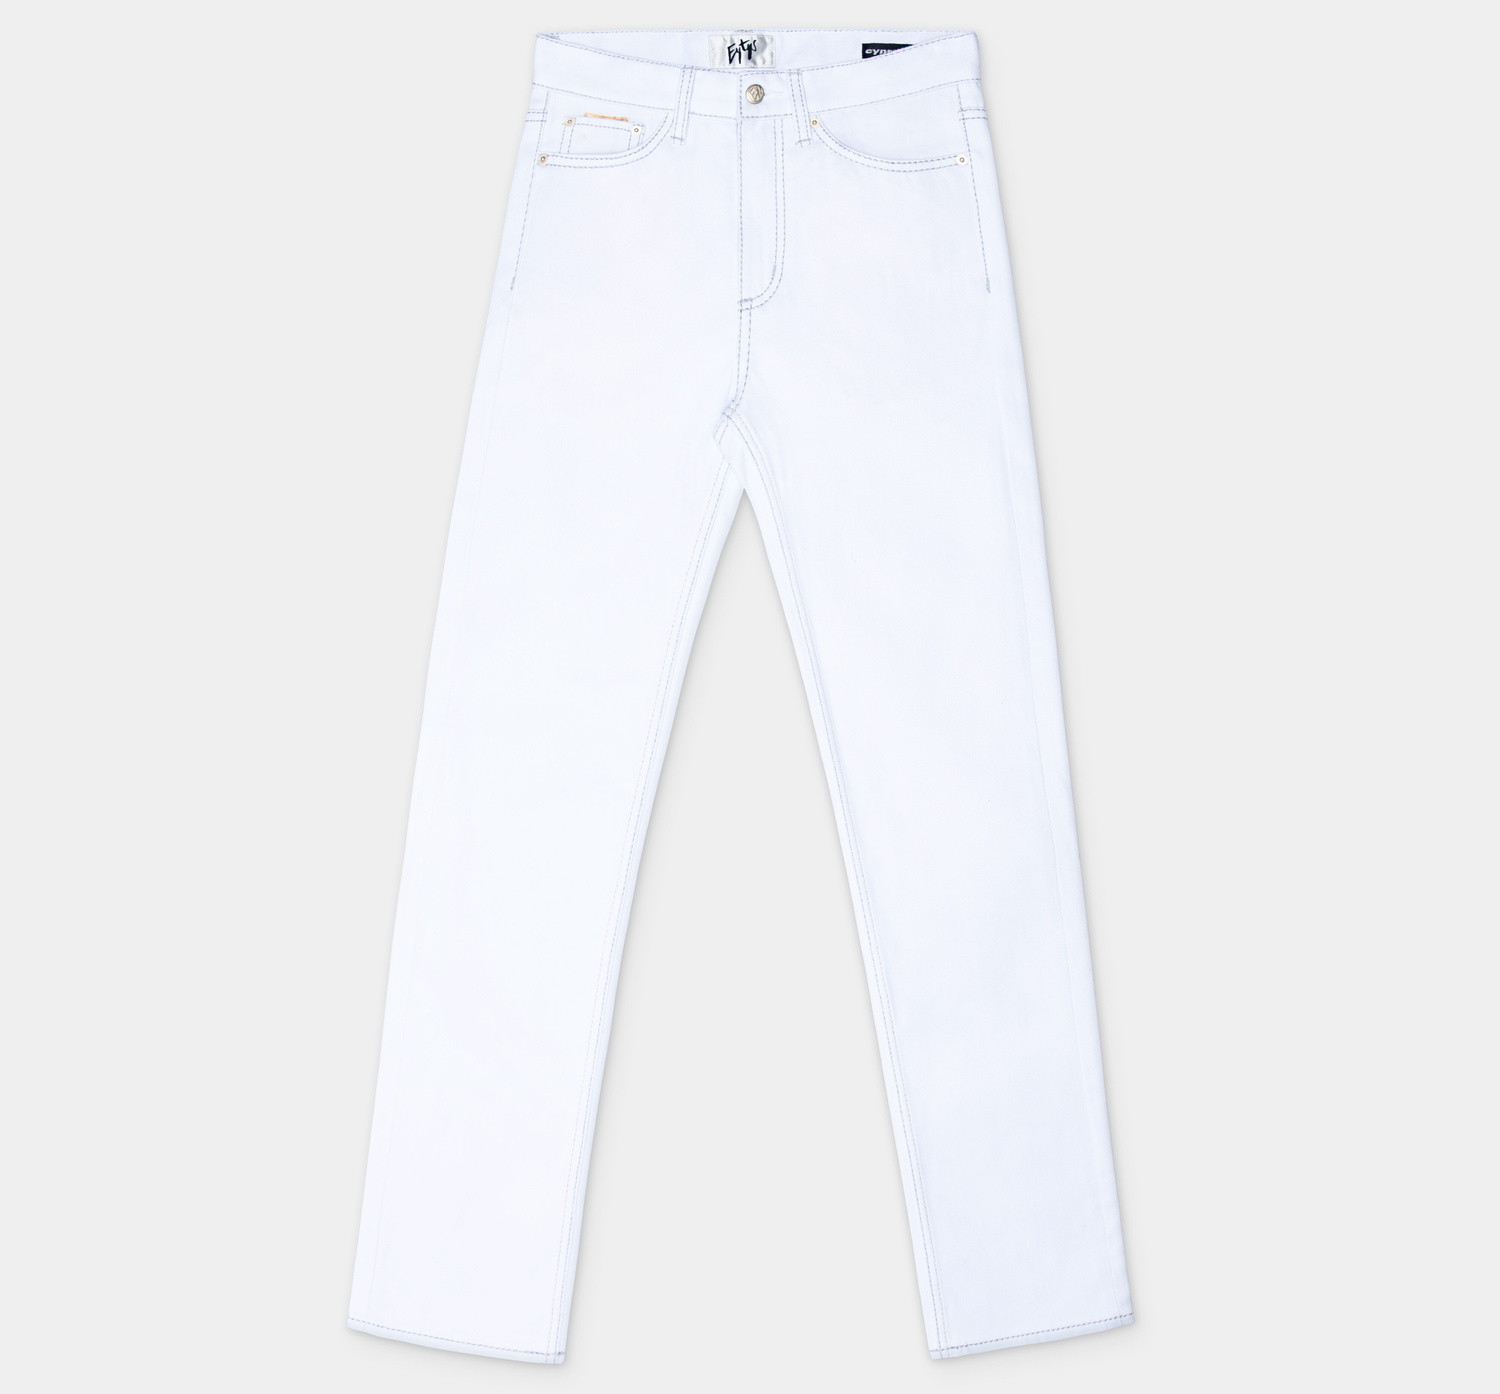 Eytys Cypress Twill White